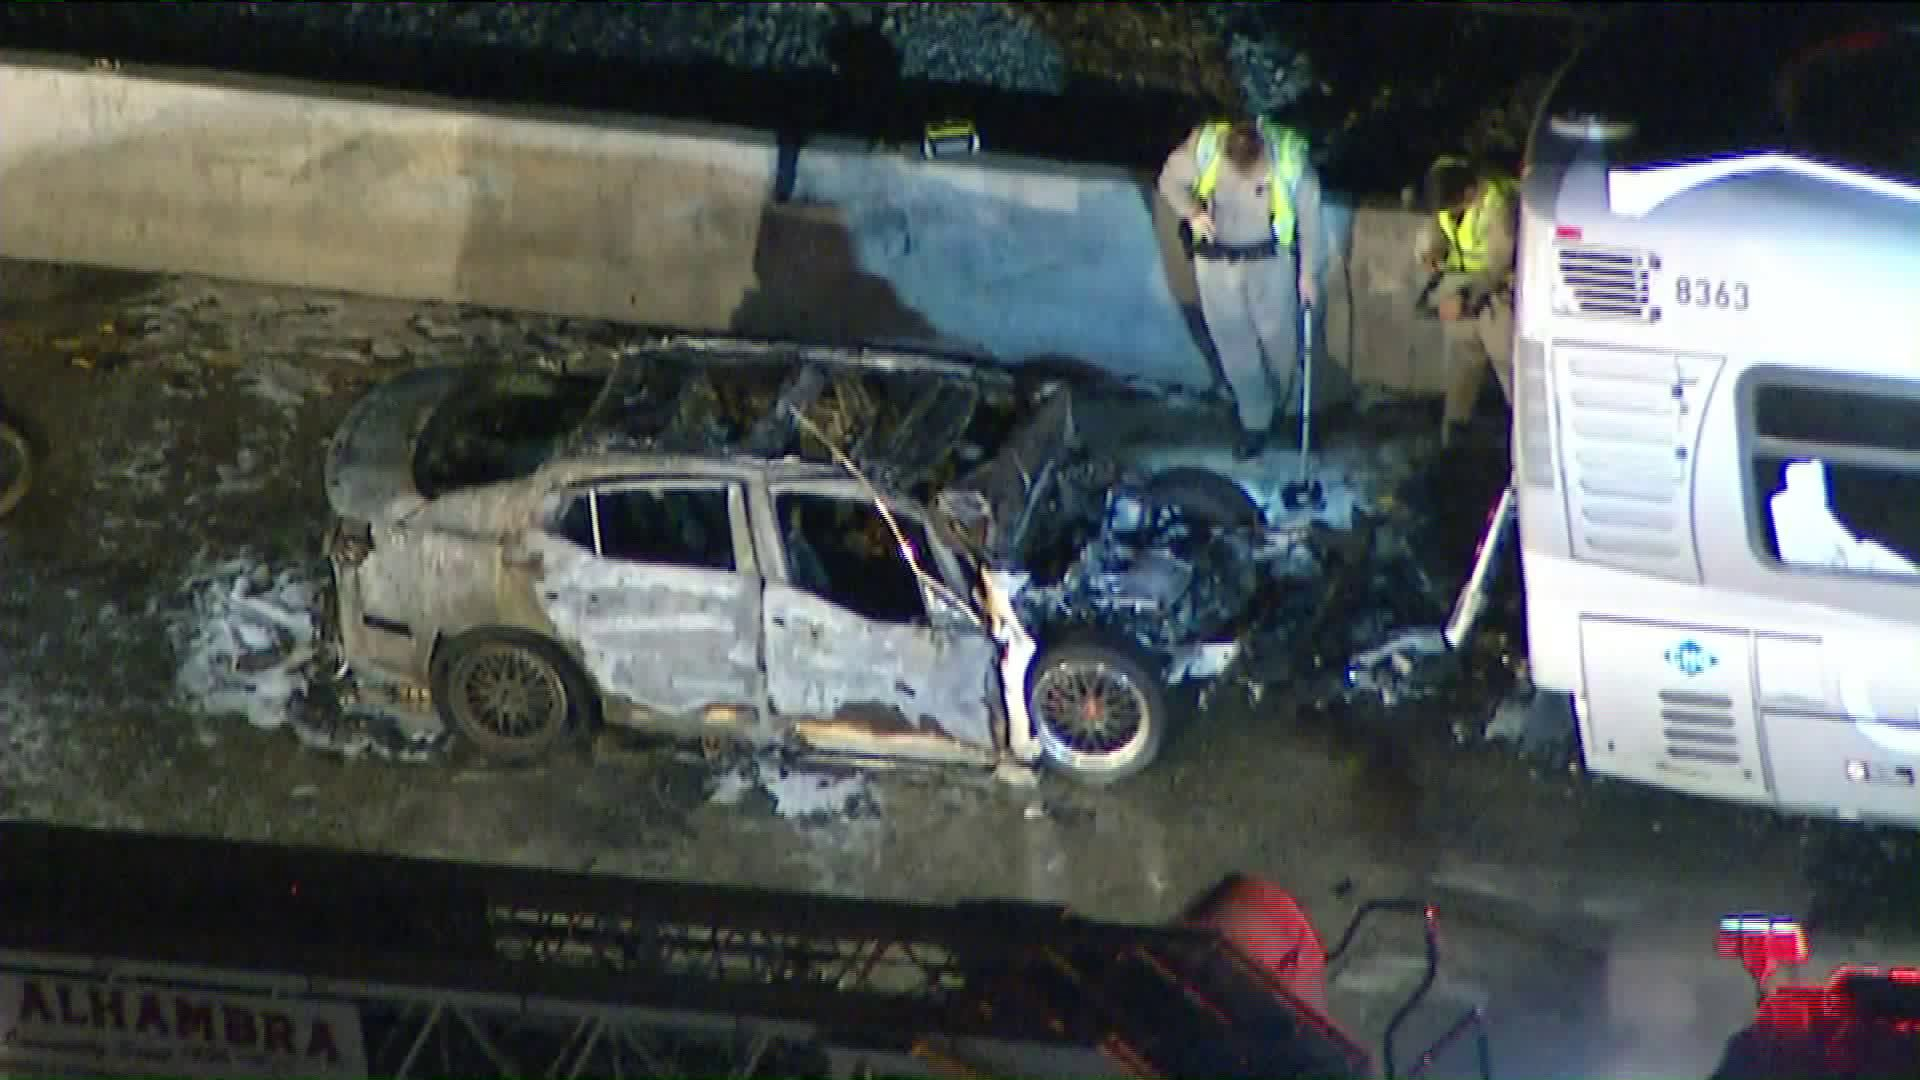 The vehicle that caught fire in a crash on the 10 Freeway in Alhambra on April 30, 2019. (Credit: KTLA)